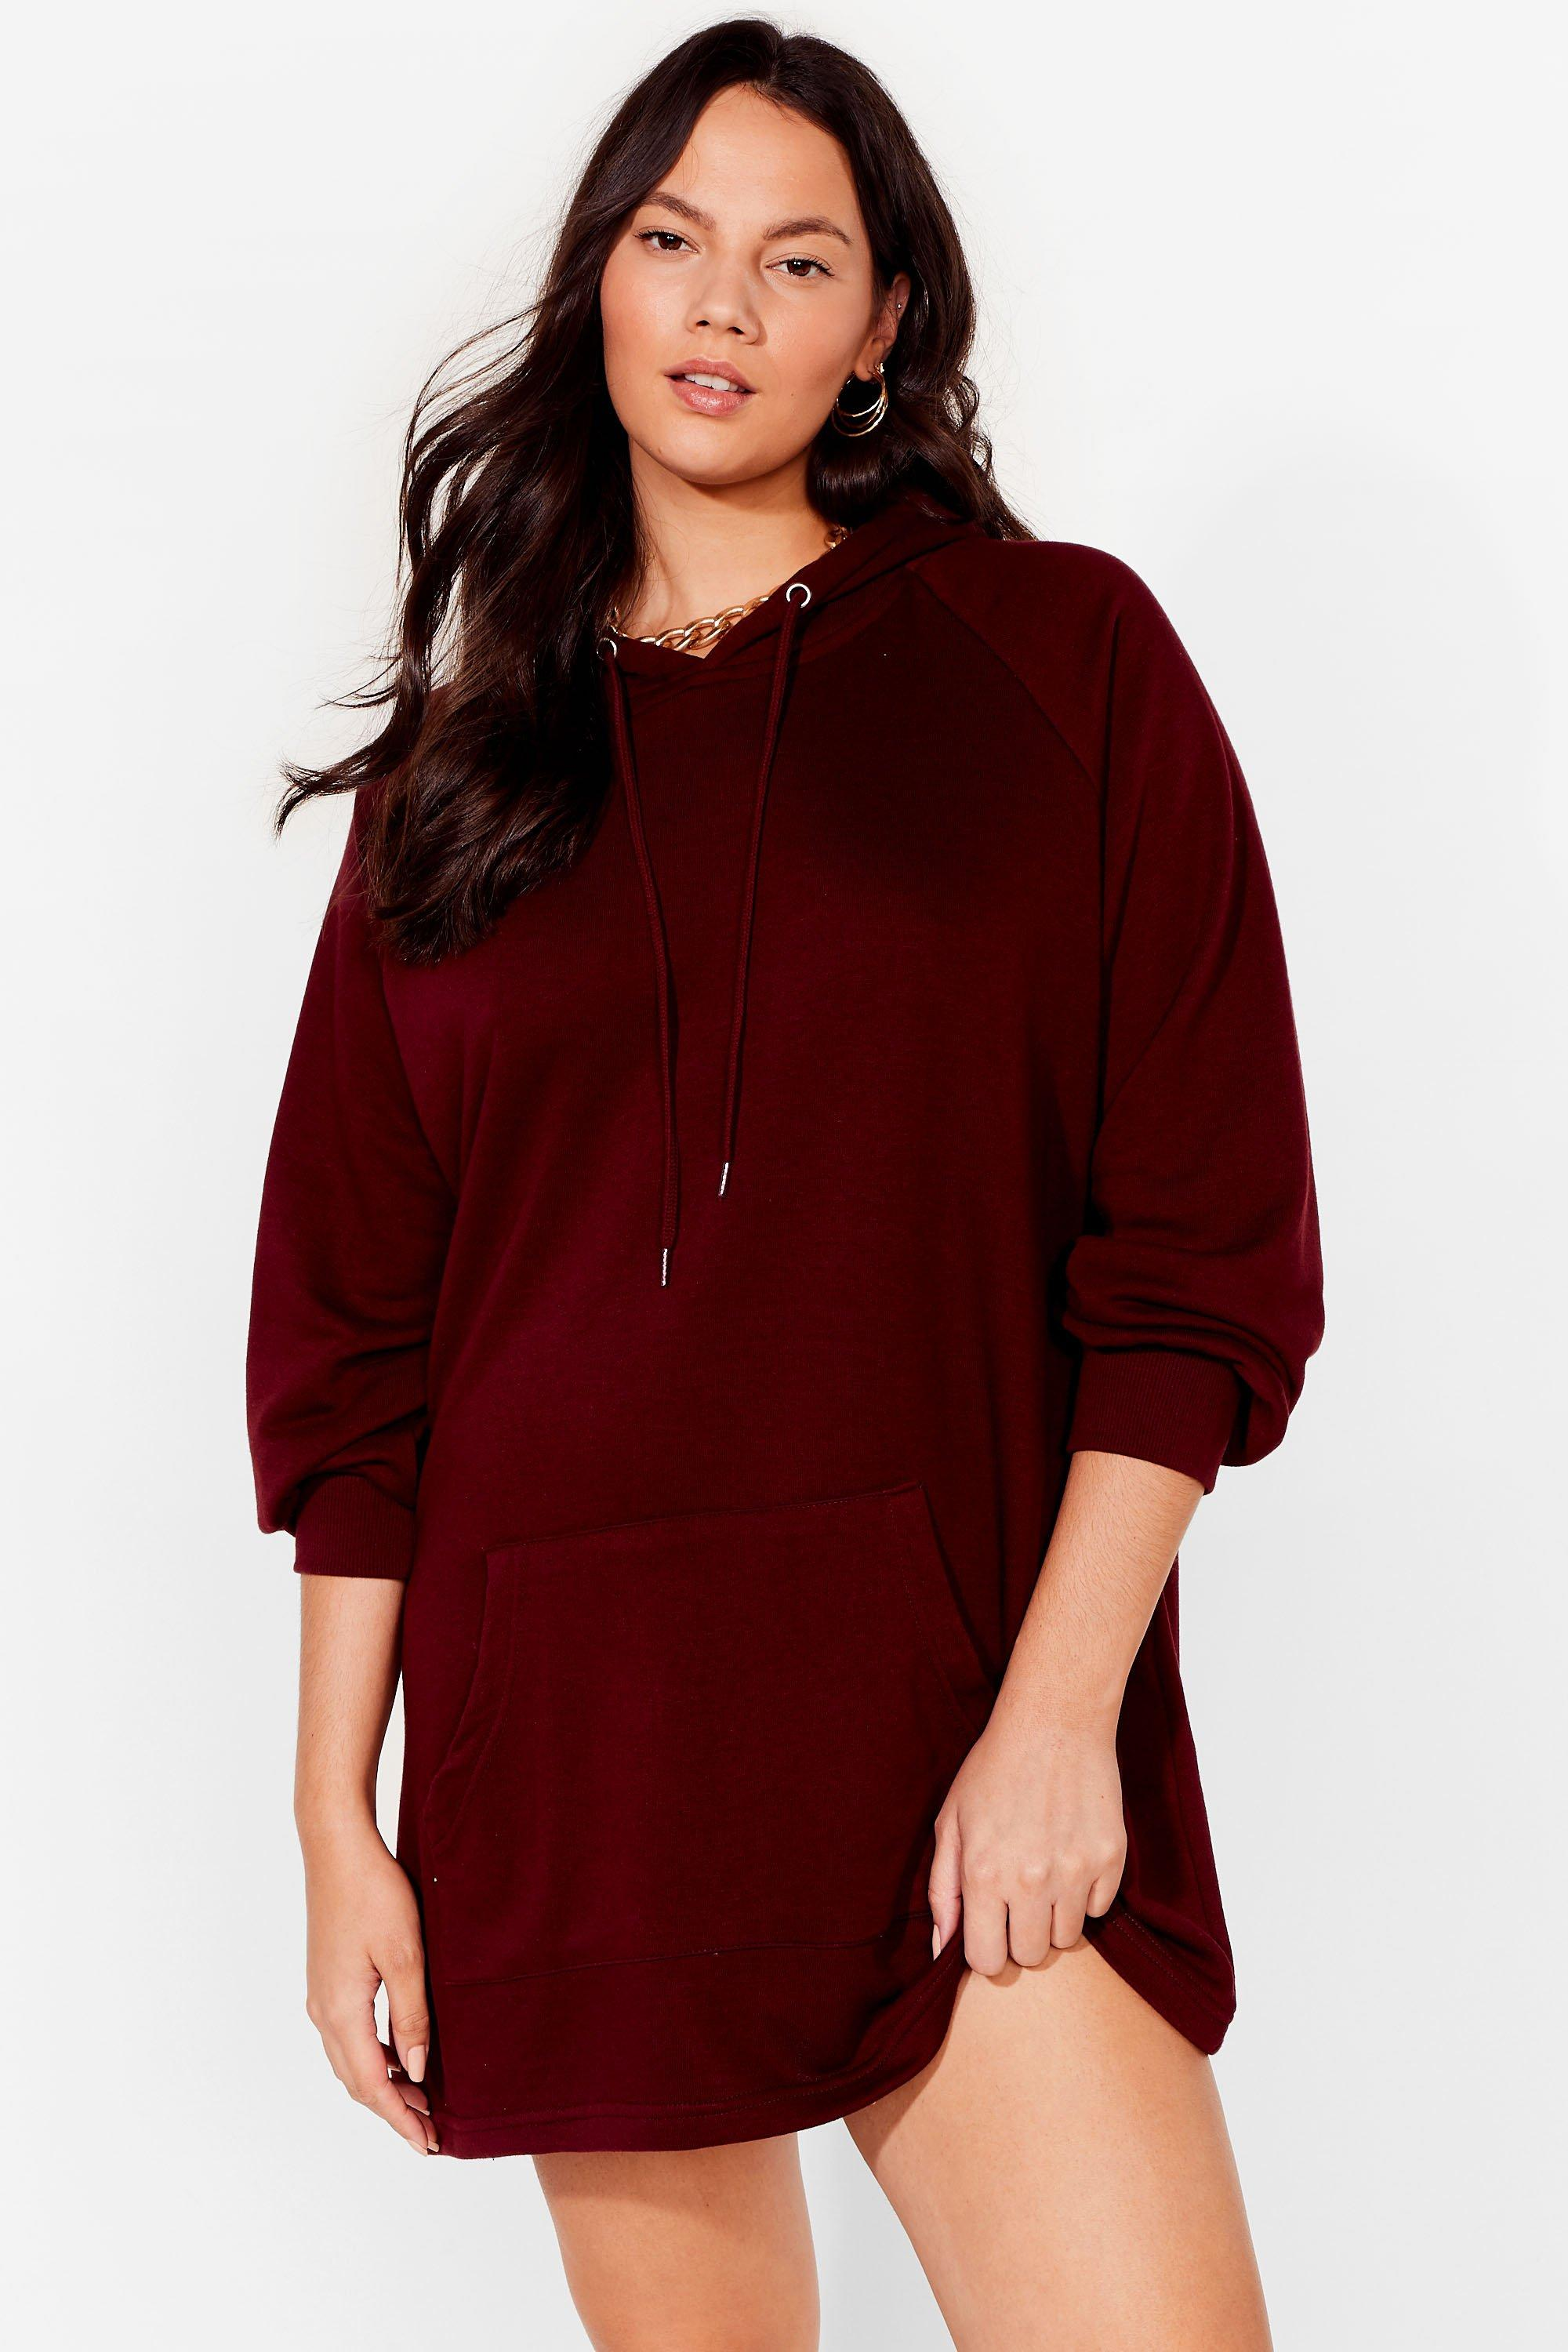 All Night Longline Plus Sweatshirt Dress 18